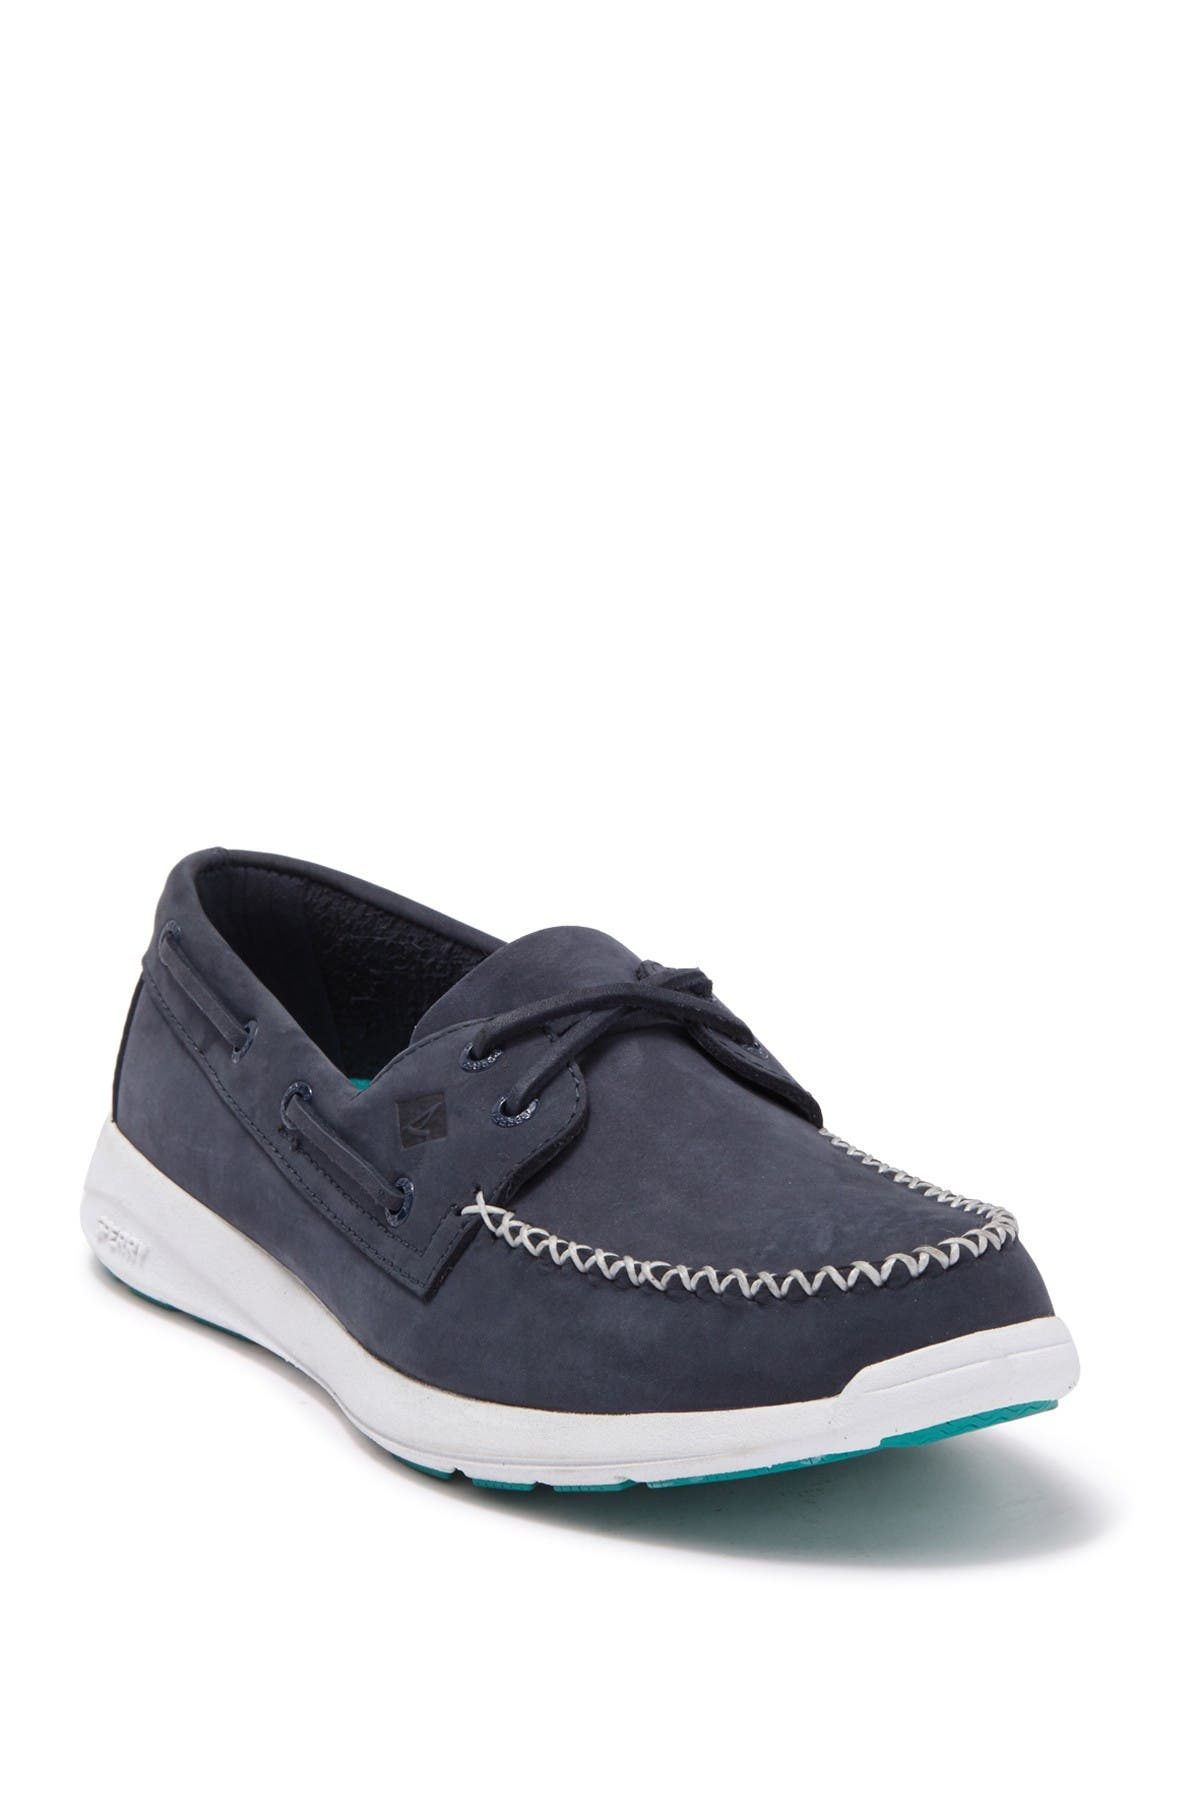 Image of Sperry Sojourn Nubuck Boat Shoe